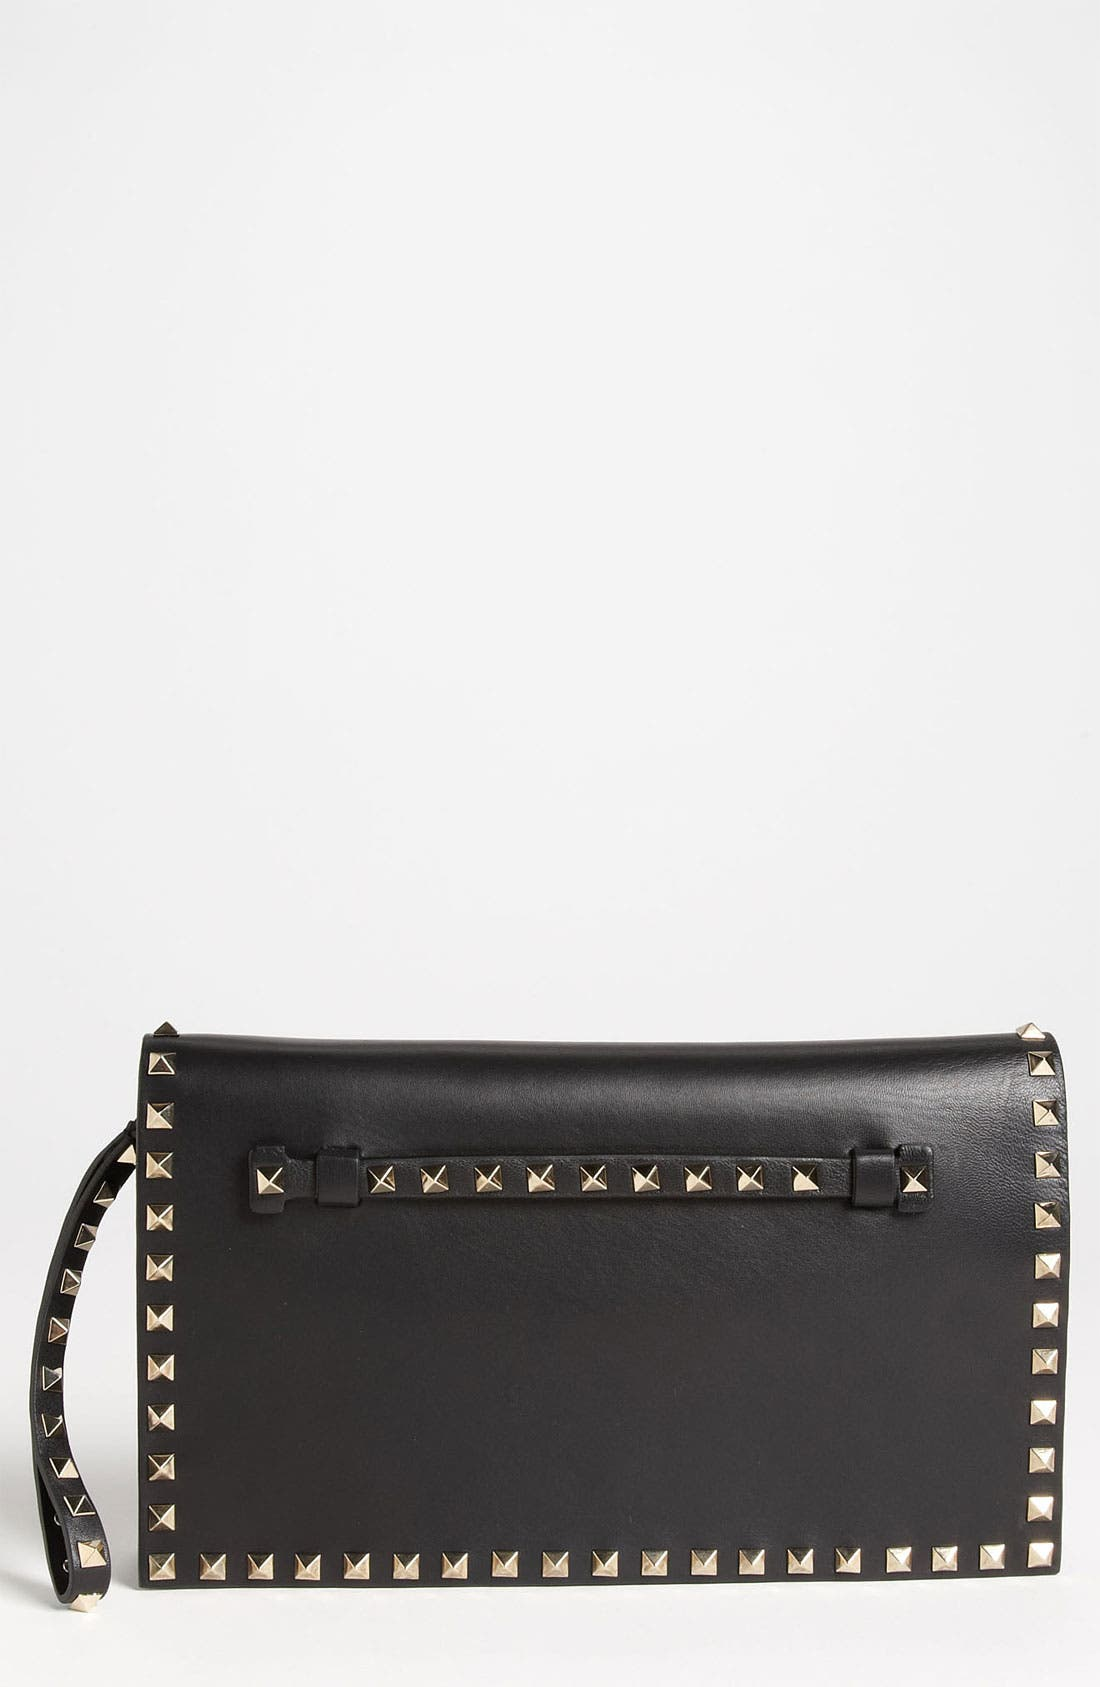 Main Image - Valentino 'Rockstud' Nappa Leather Flap Clutch